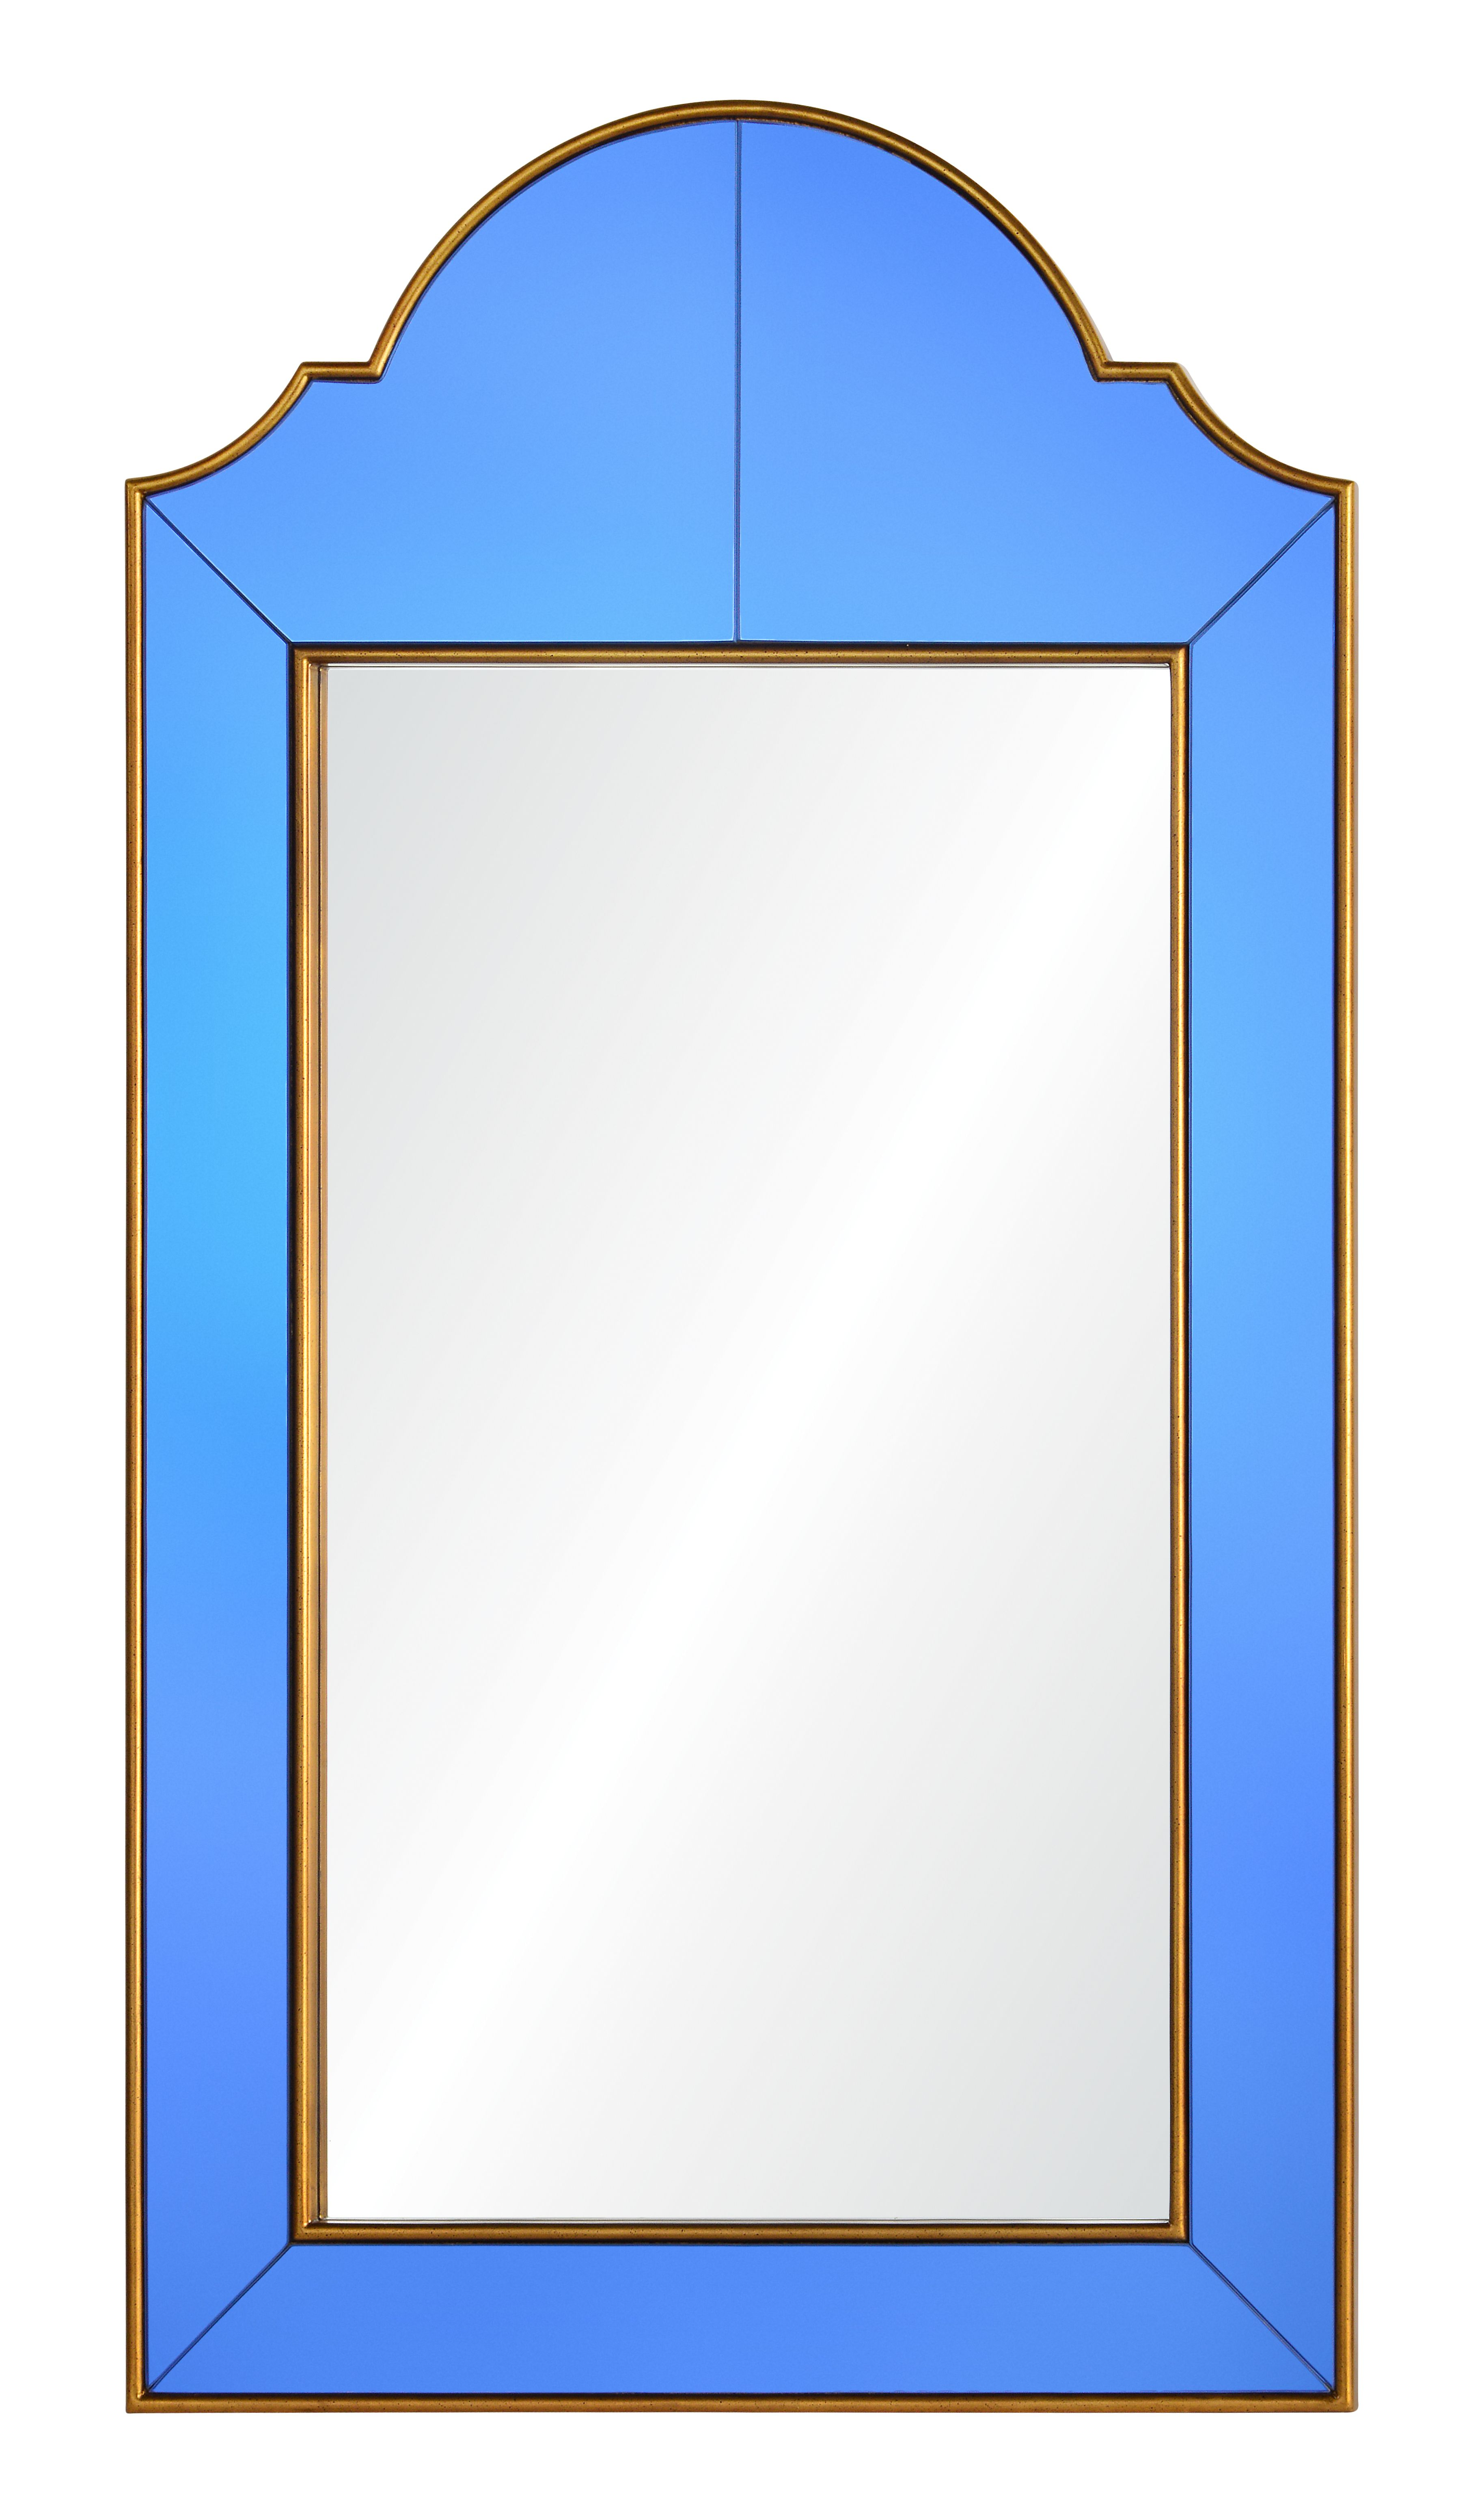 Bw3062 By Bunny Williams For Mirror Image Home Mirror Designs Mirror Frames Elegant Mirrors